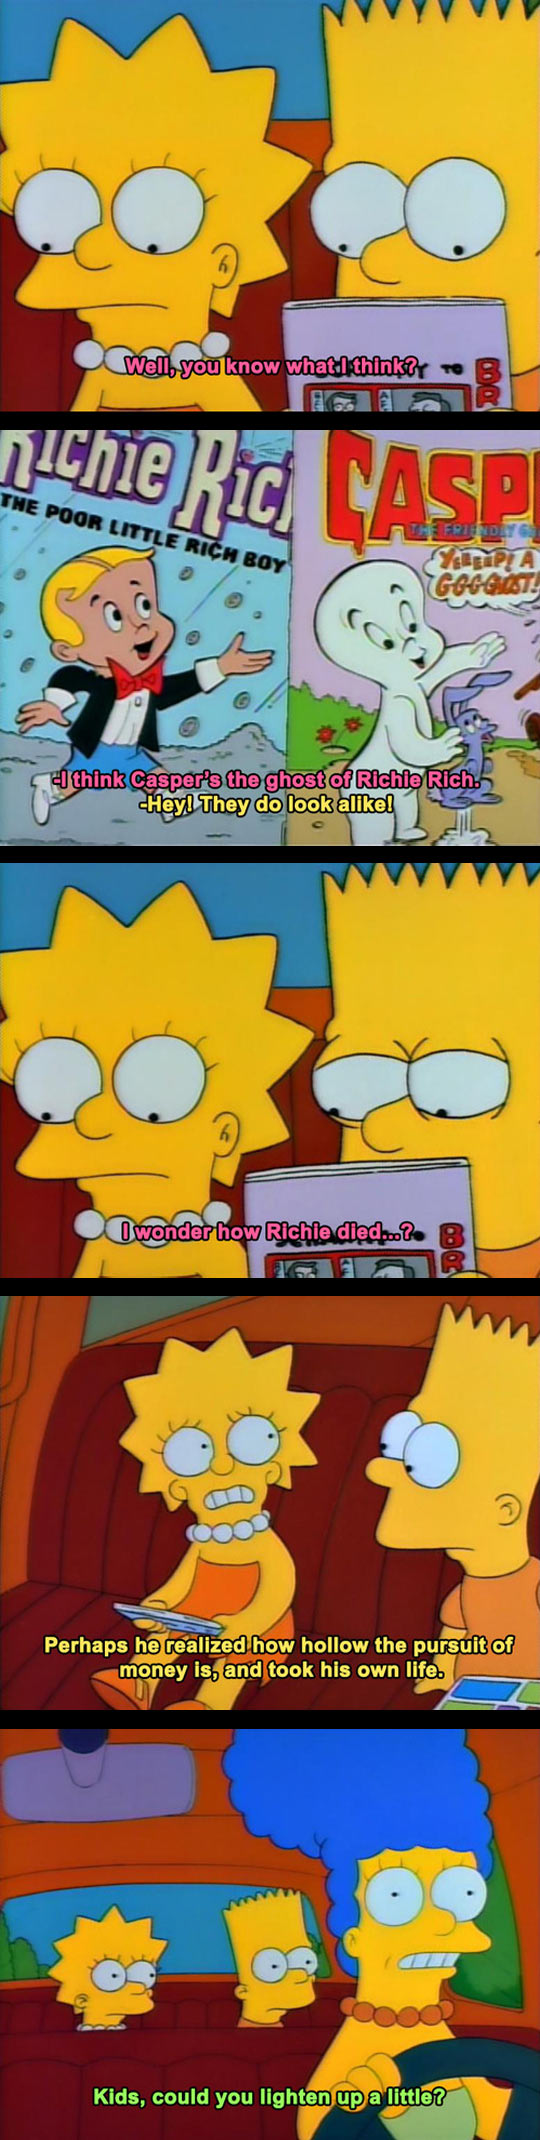 funny-Simpsons-thoughts-Casper-Richie